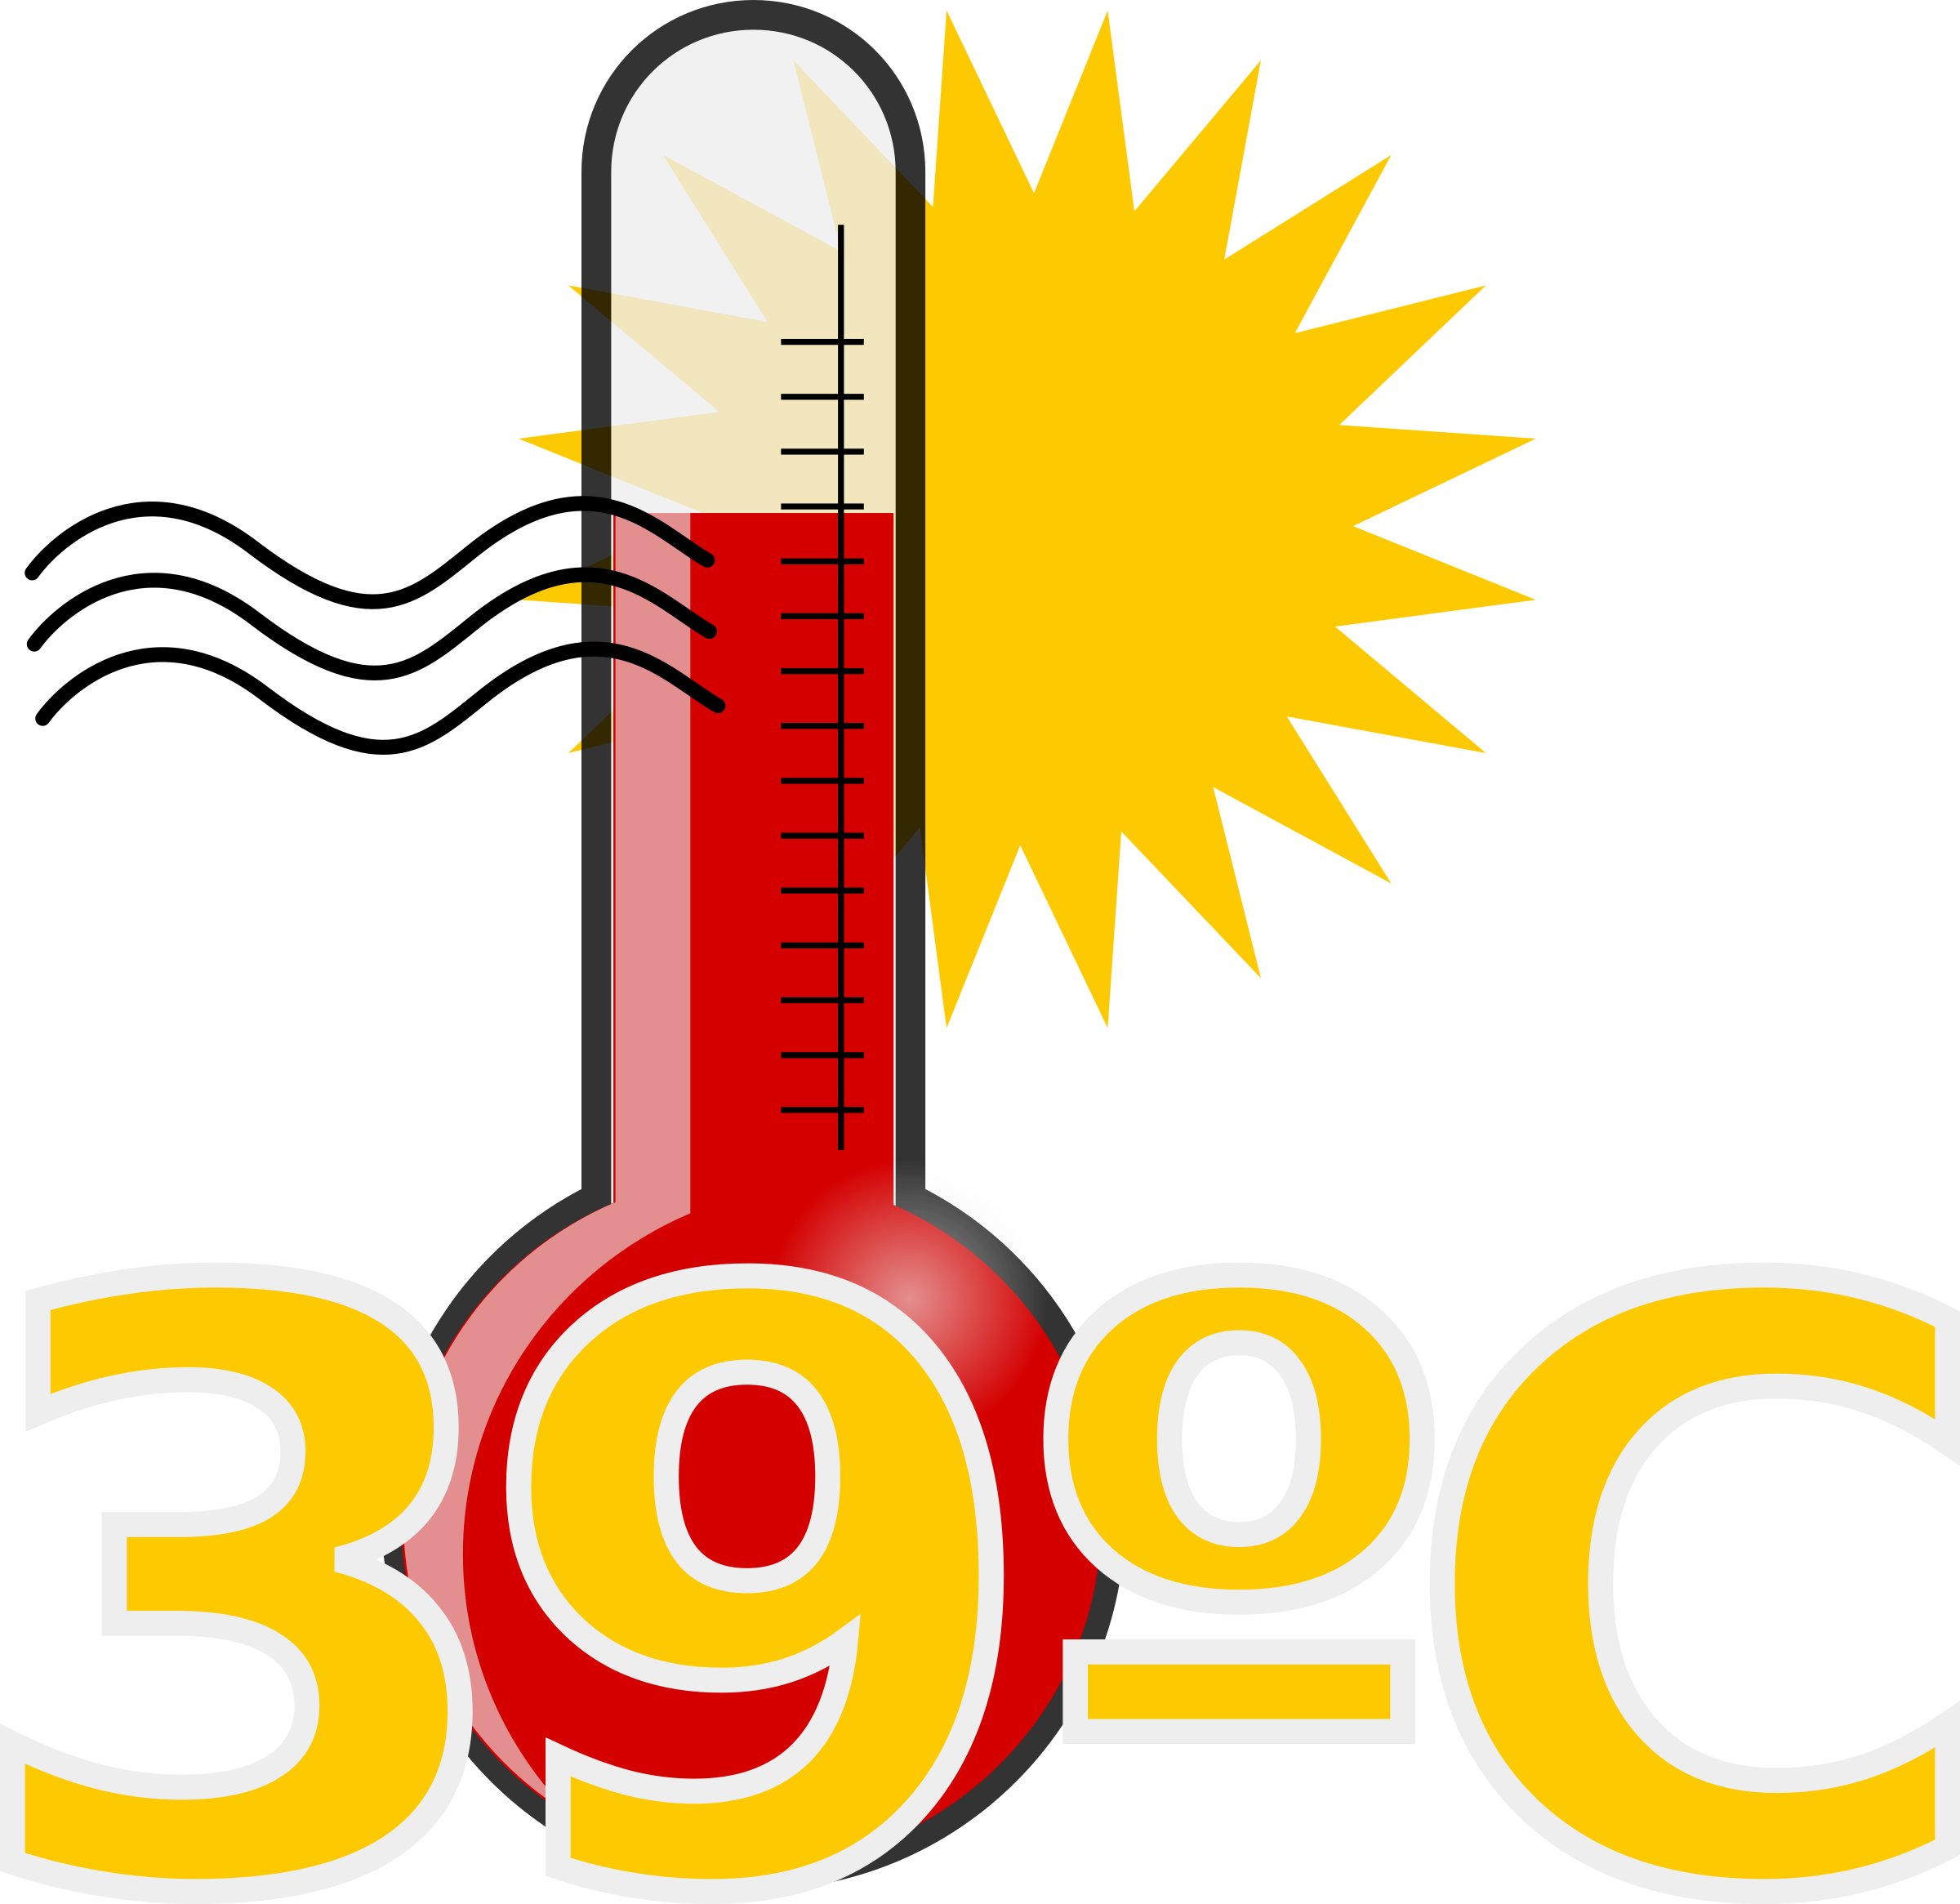 Clipart - Termômetro quente thermometer hot